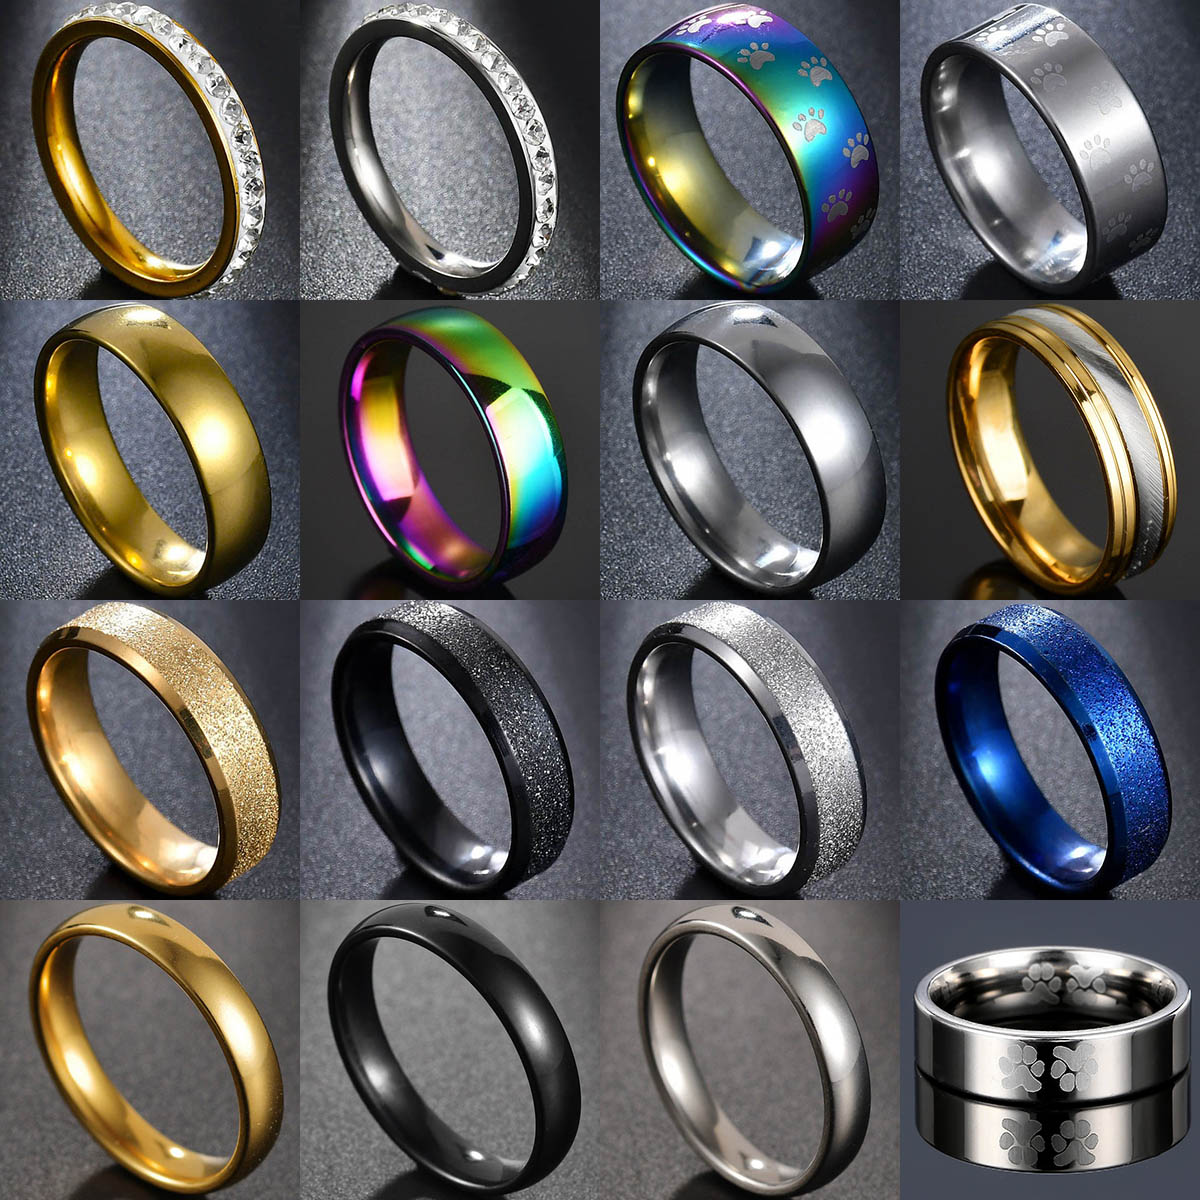 Quality GoldColor Wedding Bands Ring For Women Men Jewelry Stainless Steel Engagement Ring Couple Anniversary Gift Amazing Price